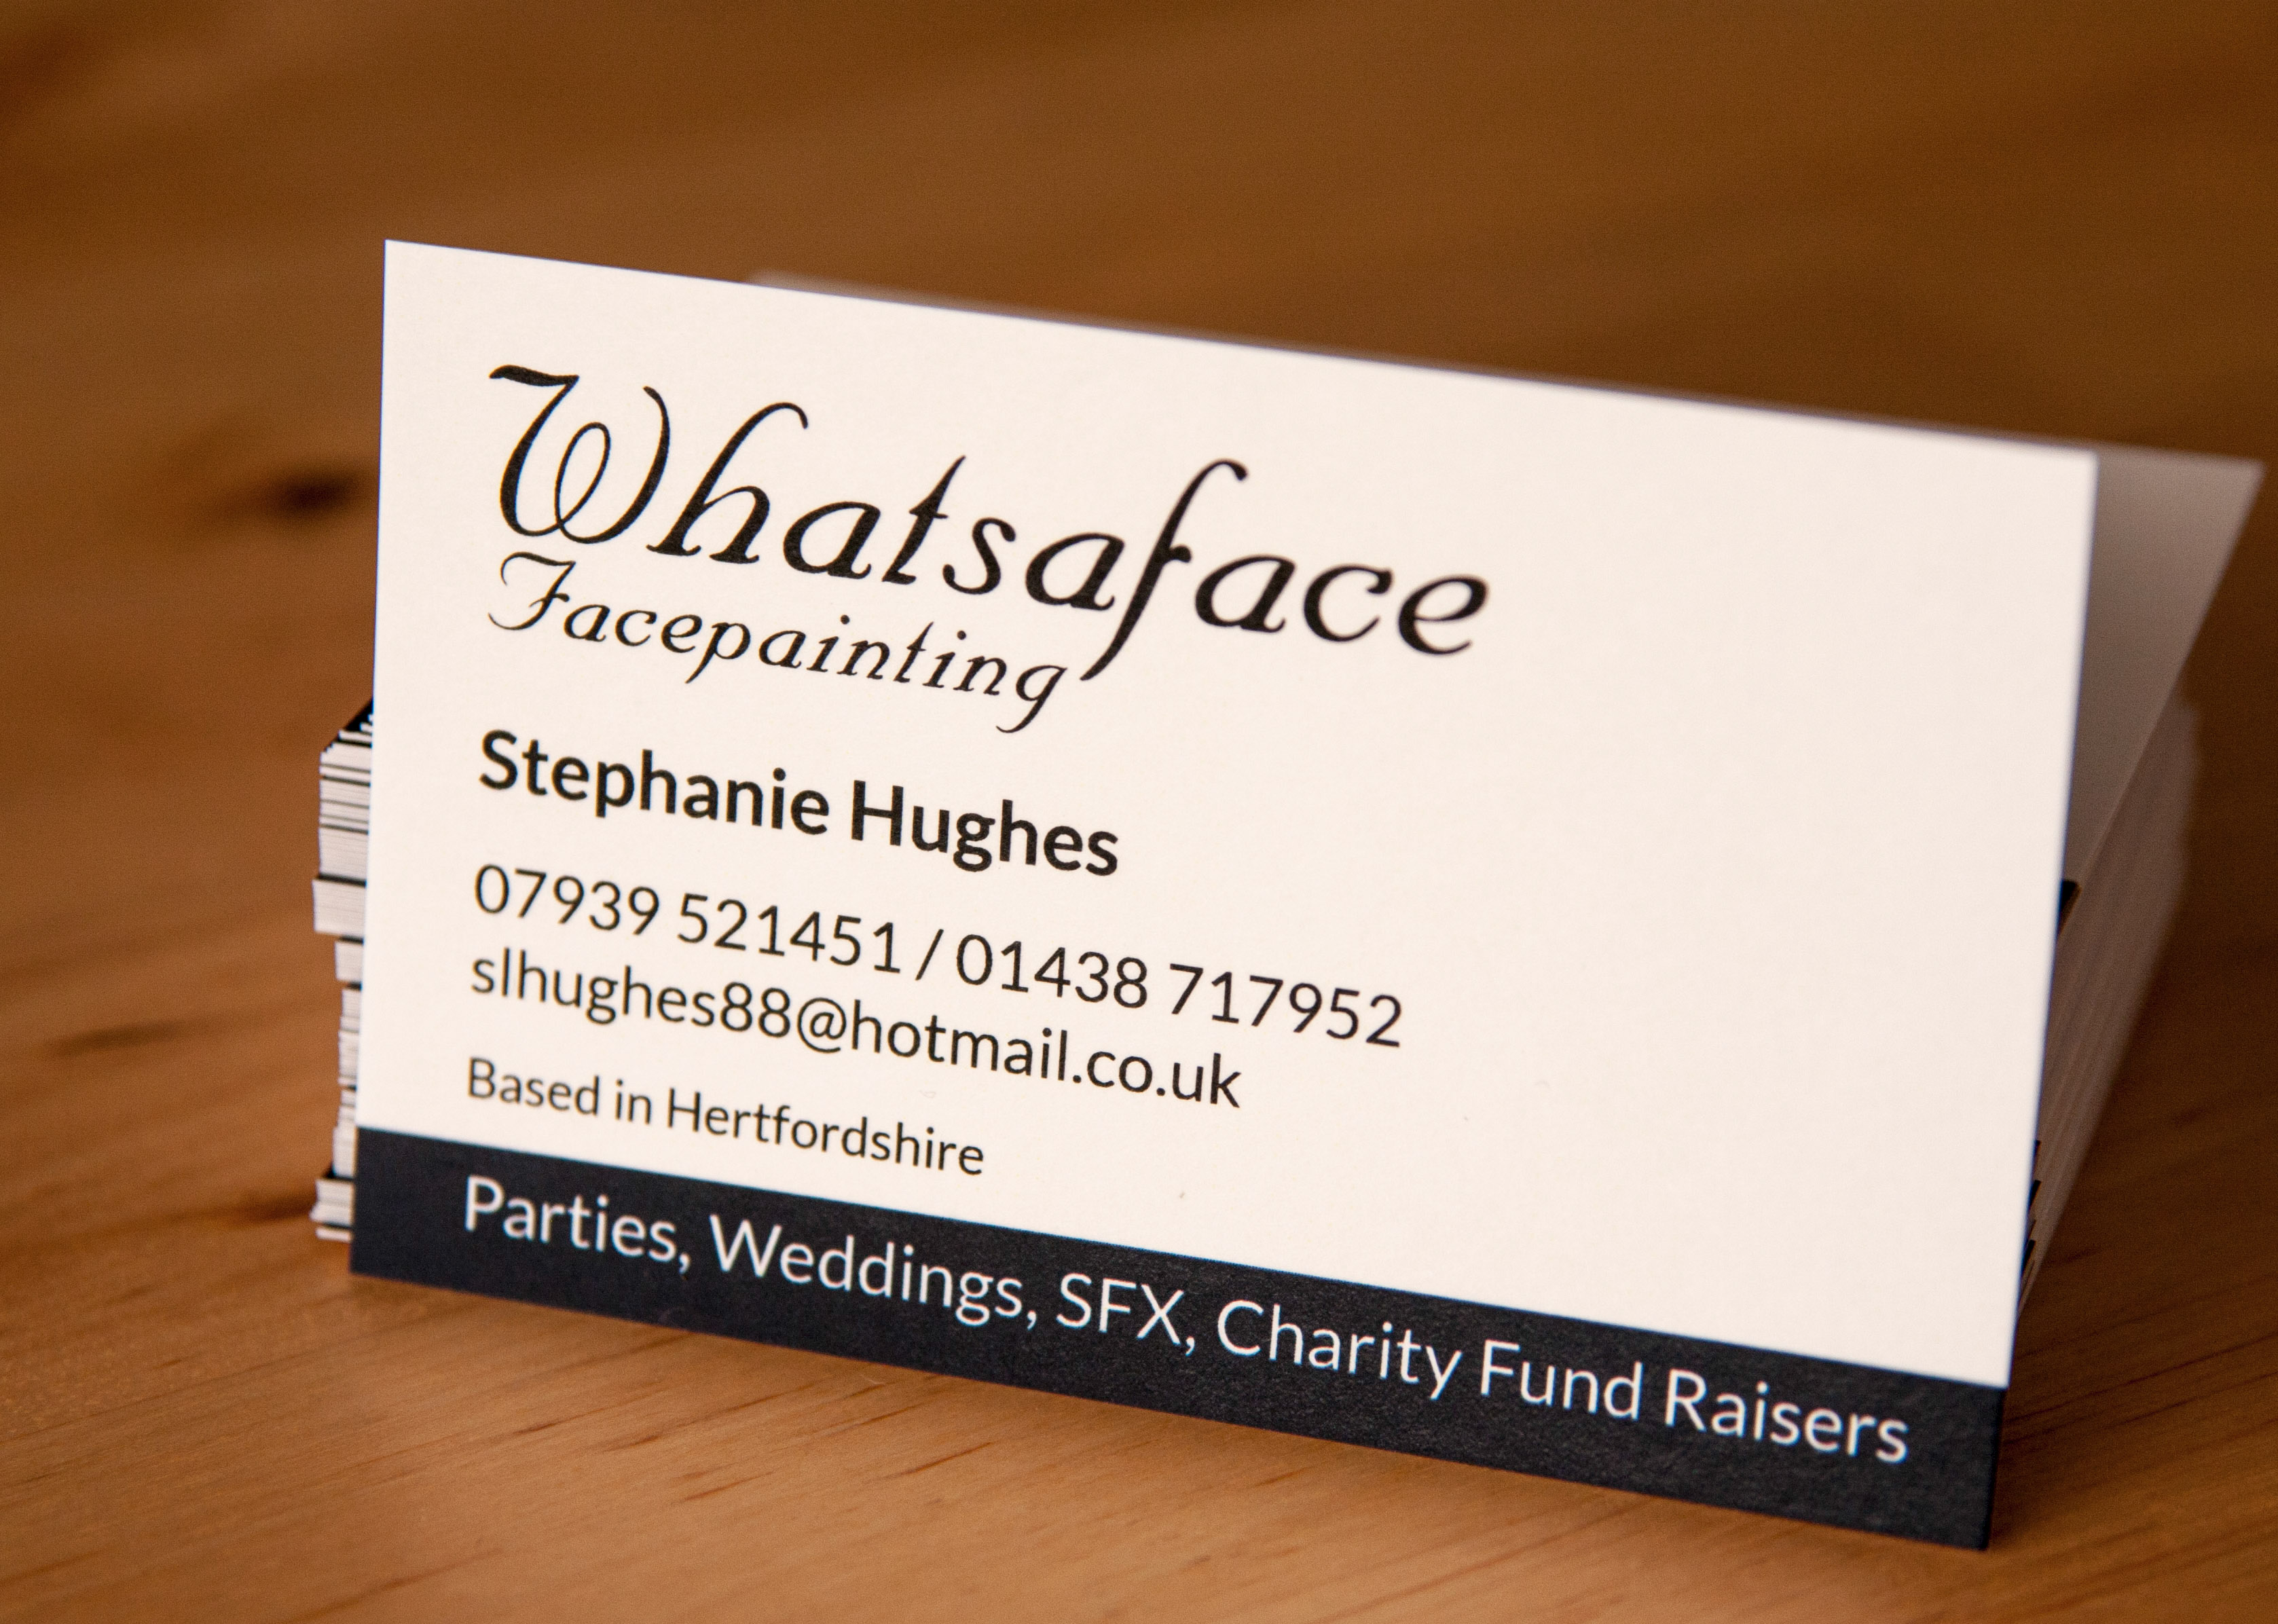 Phillip Beverley - Whatsaface Business Cards